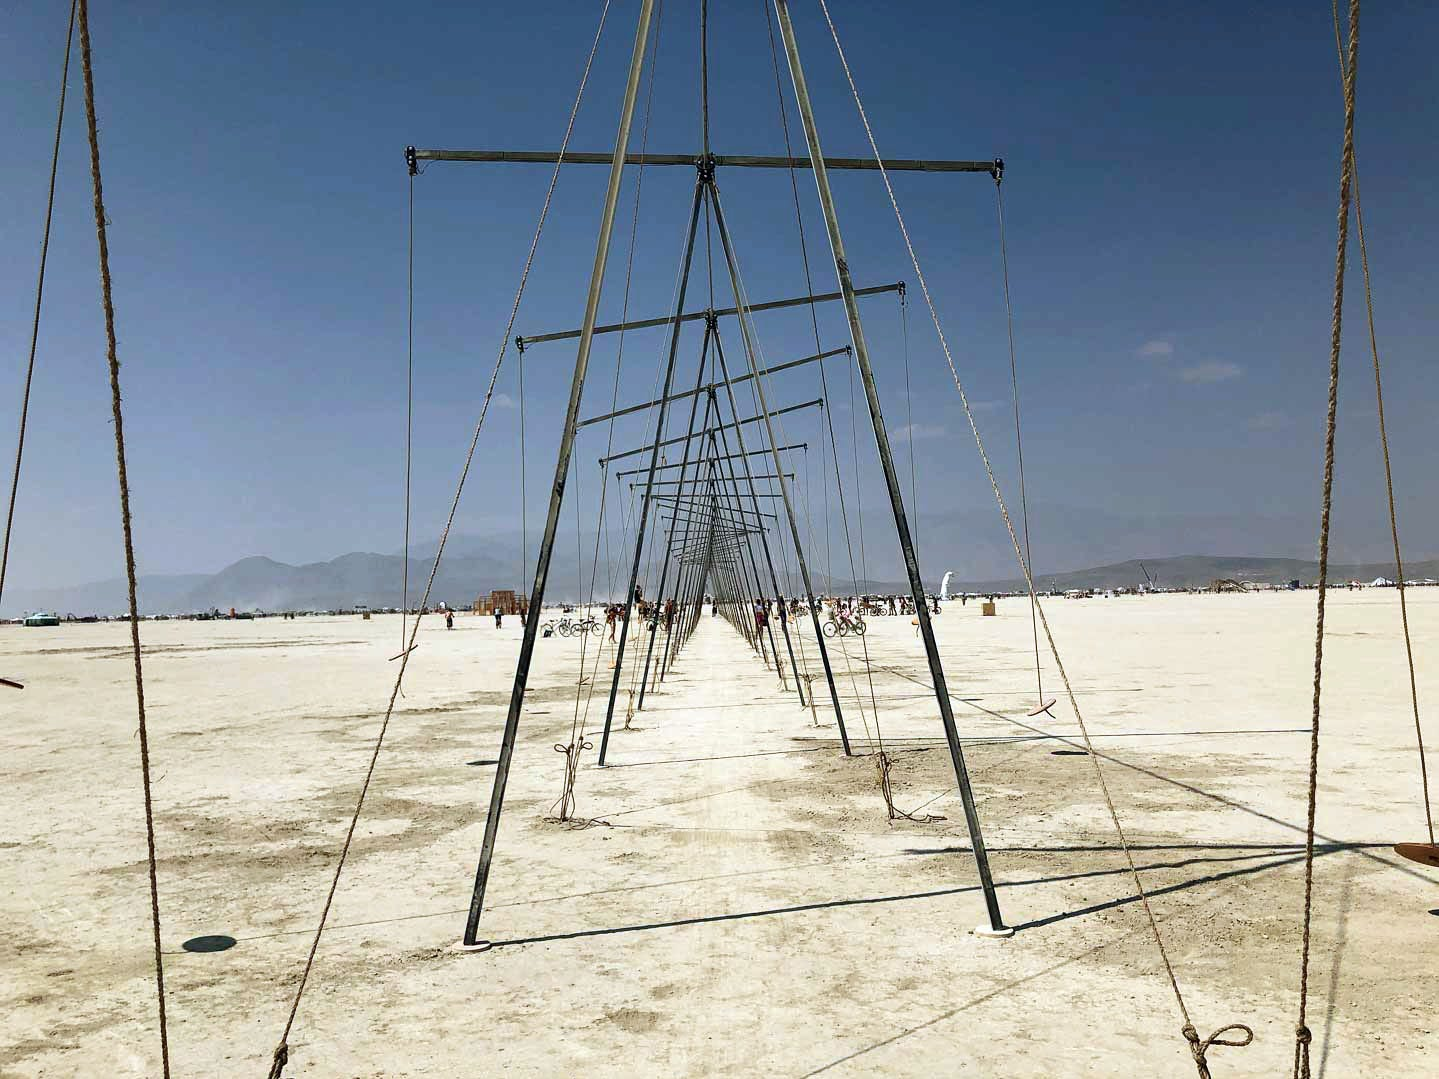 The Seesaw Wave Machine, created by Ryan Elmendorf and Nick Geurts, stands in the playa at Burning Man 2018. The seesaw wave machine is 21 seesaw swings connected across a triangular structure. When people play on the swings, other seesaws start to move.